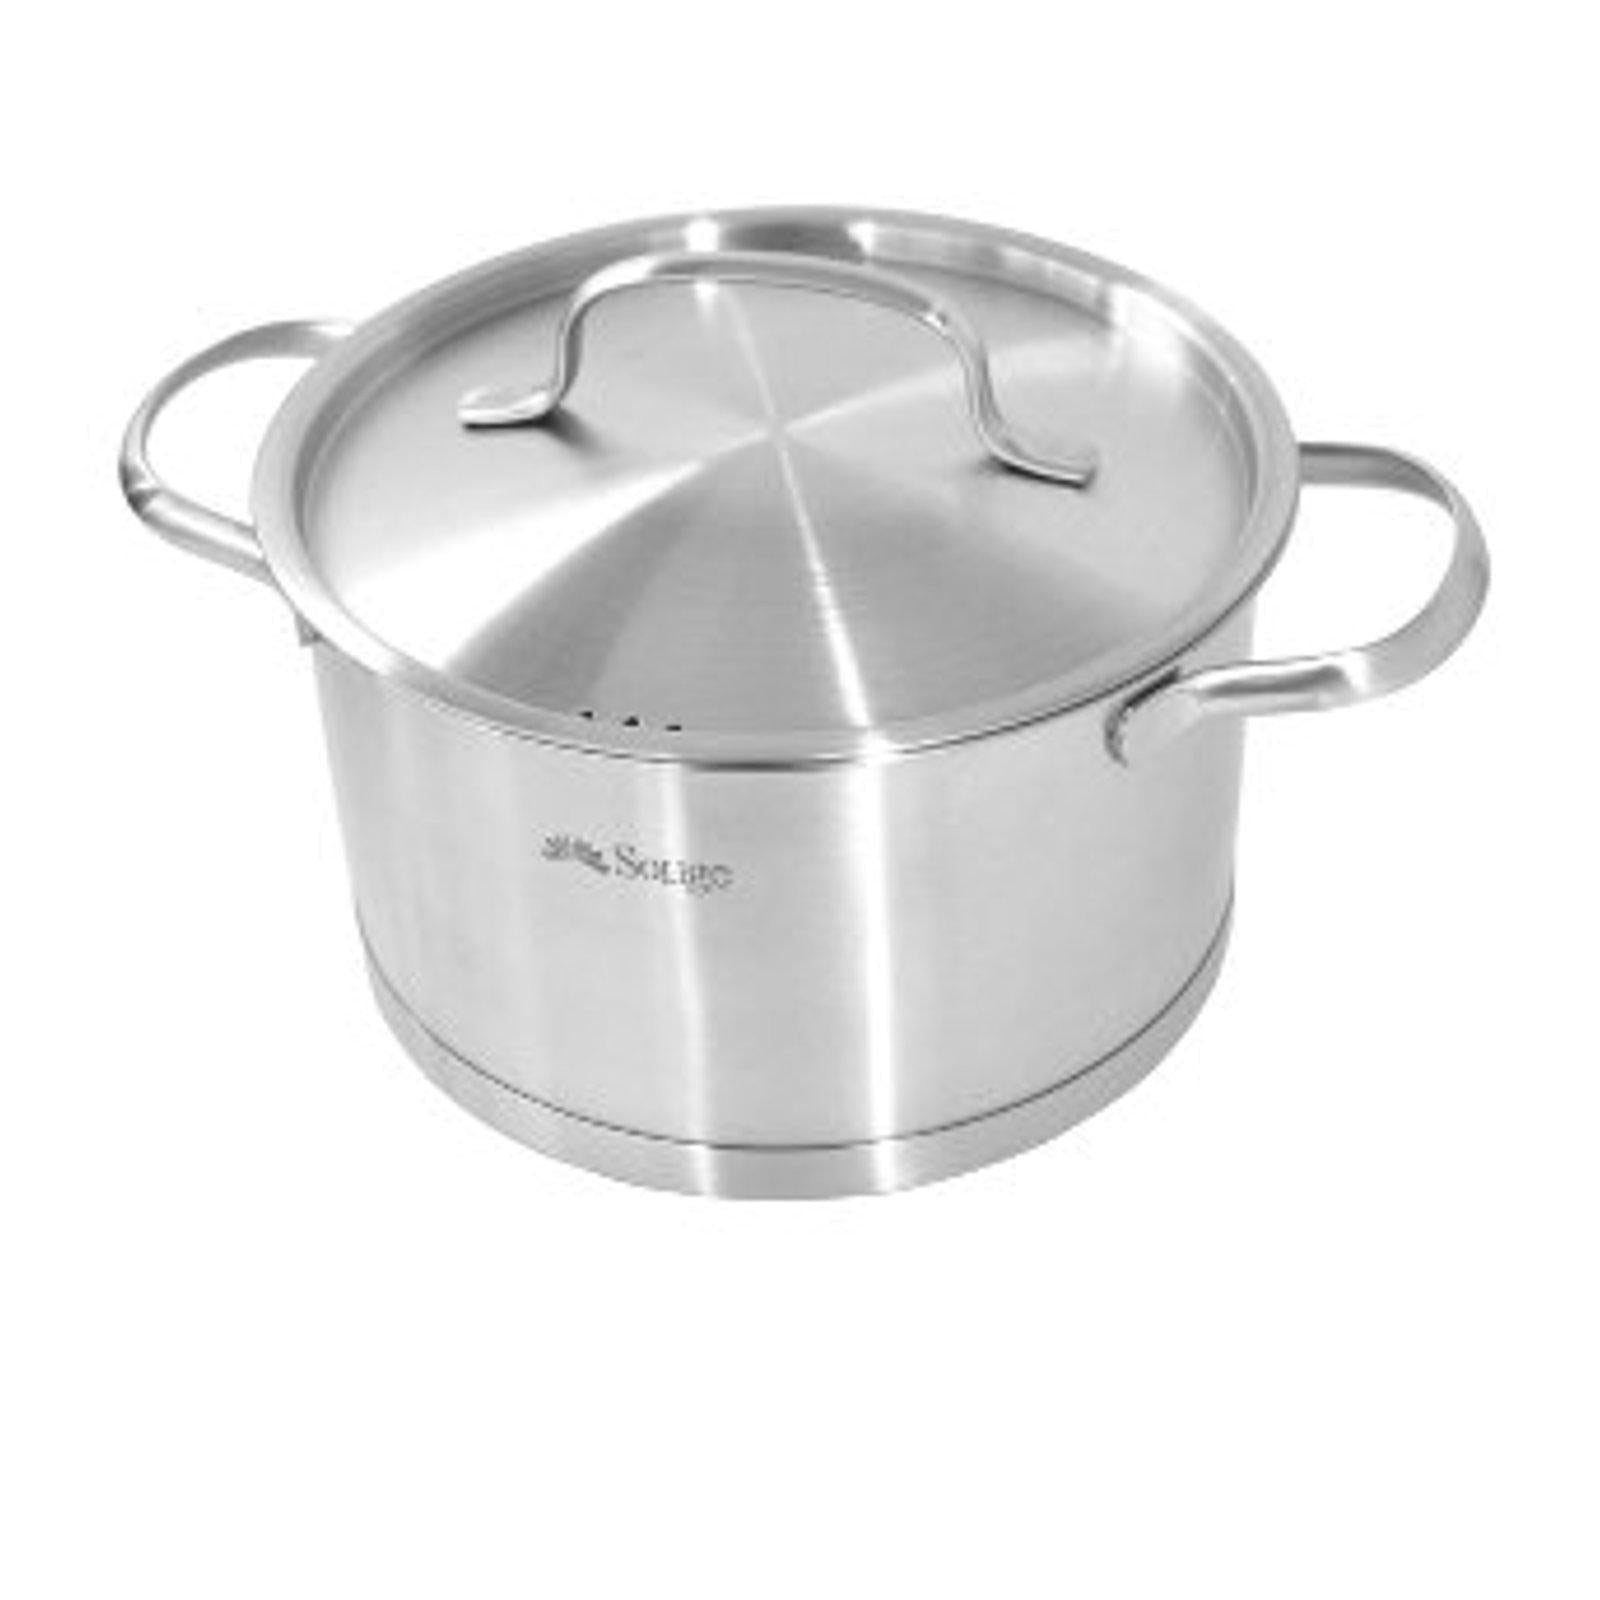 Large Casserole Pot With Lid - 20 cm Stainless Steel-Stainless Steel Cookware-Chef's Quality Cookware